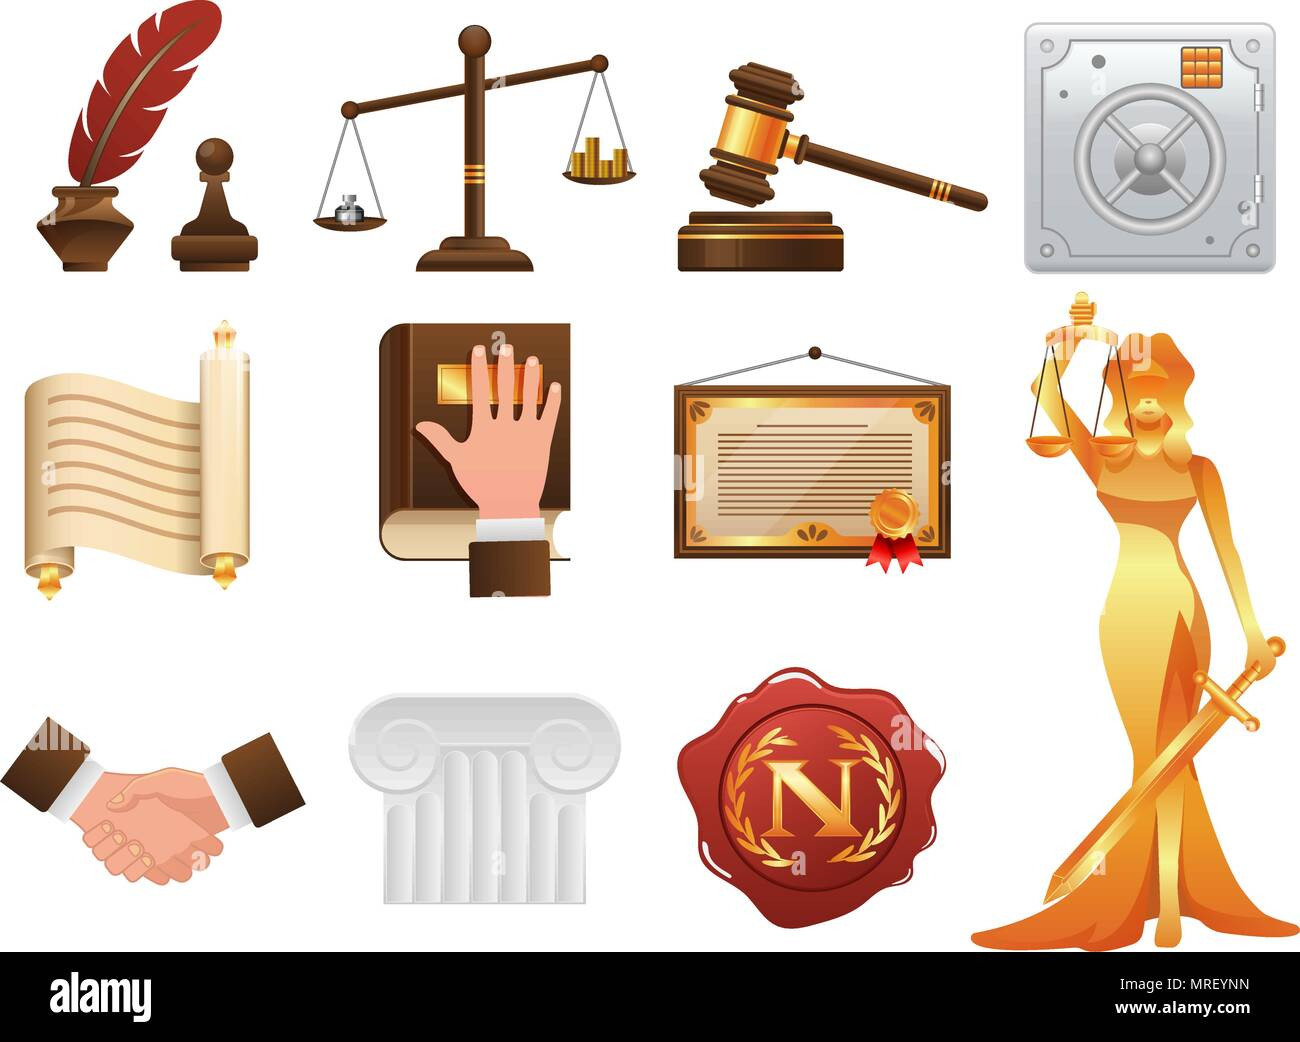 Law justice and order realistic icons set - Stock Vector